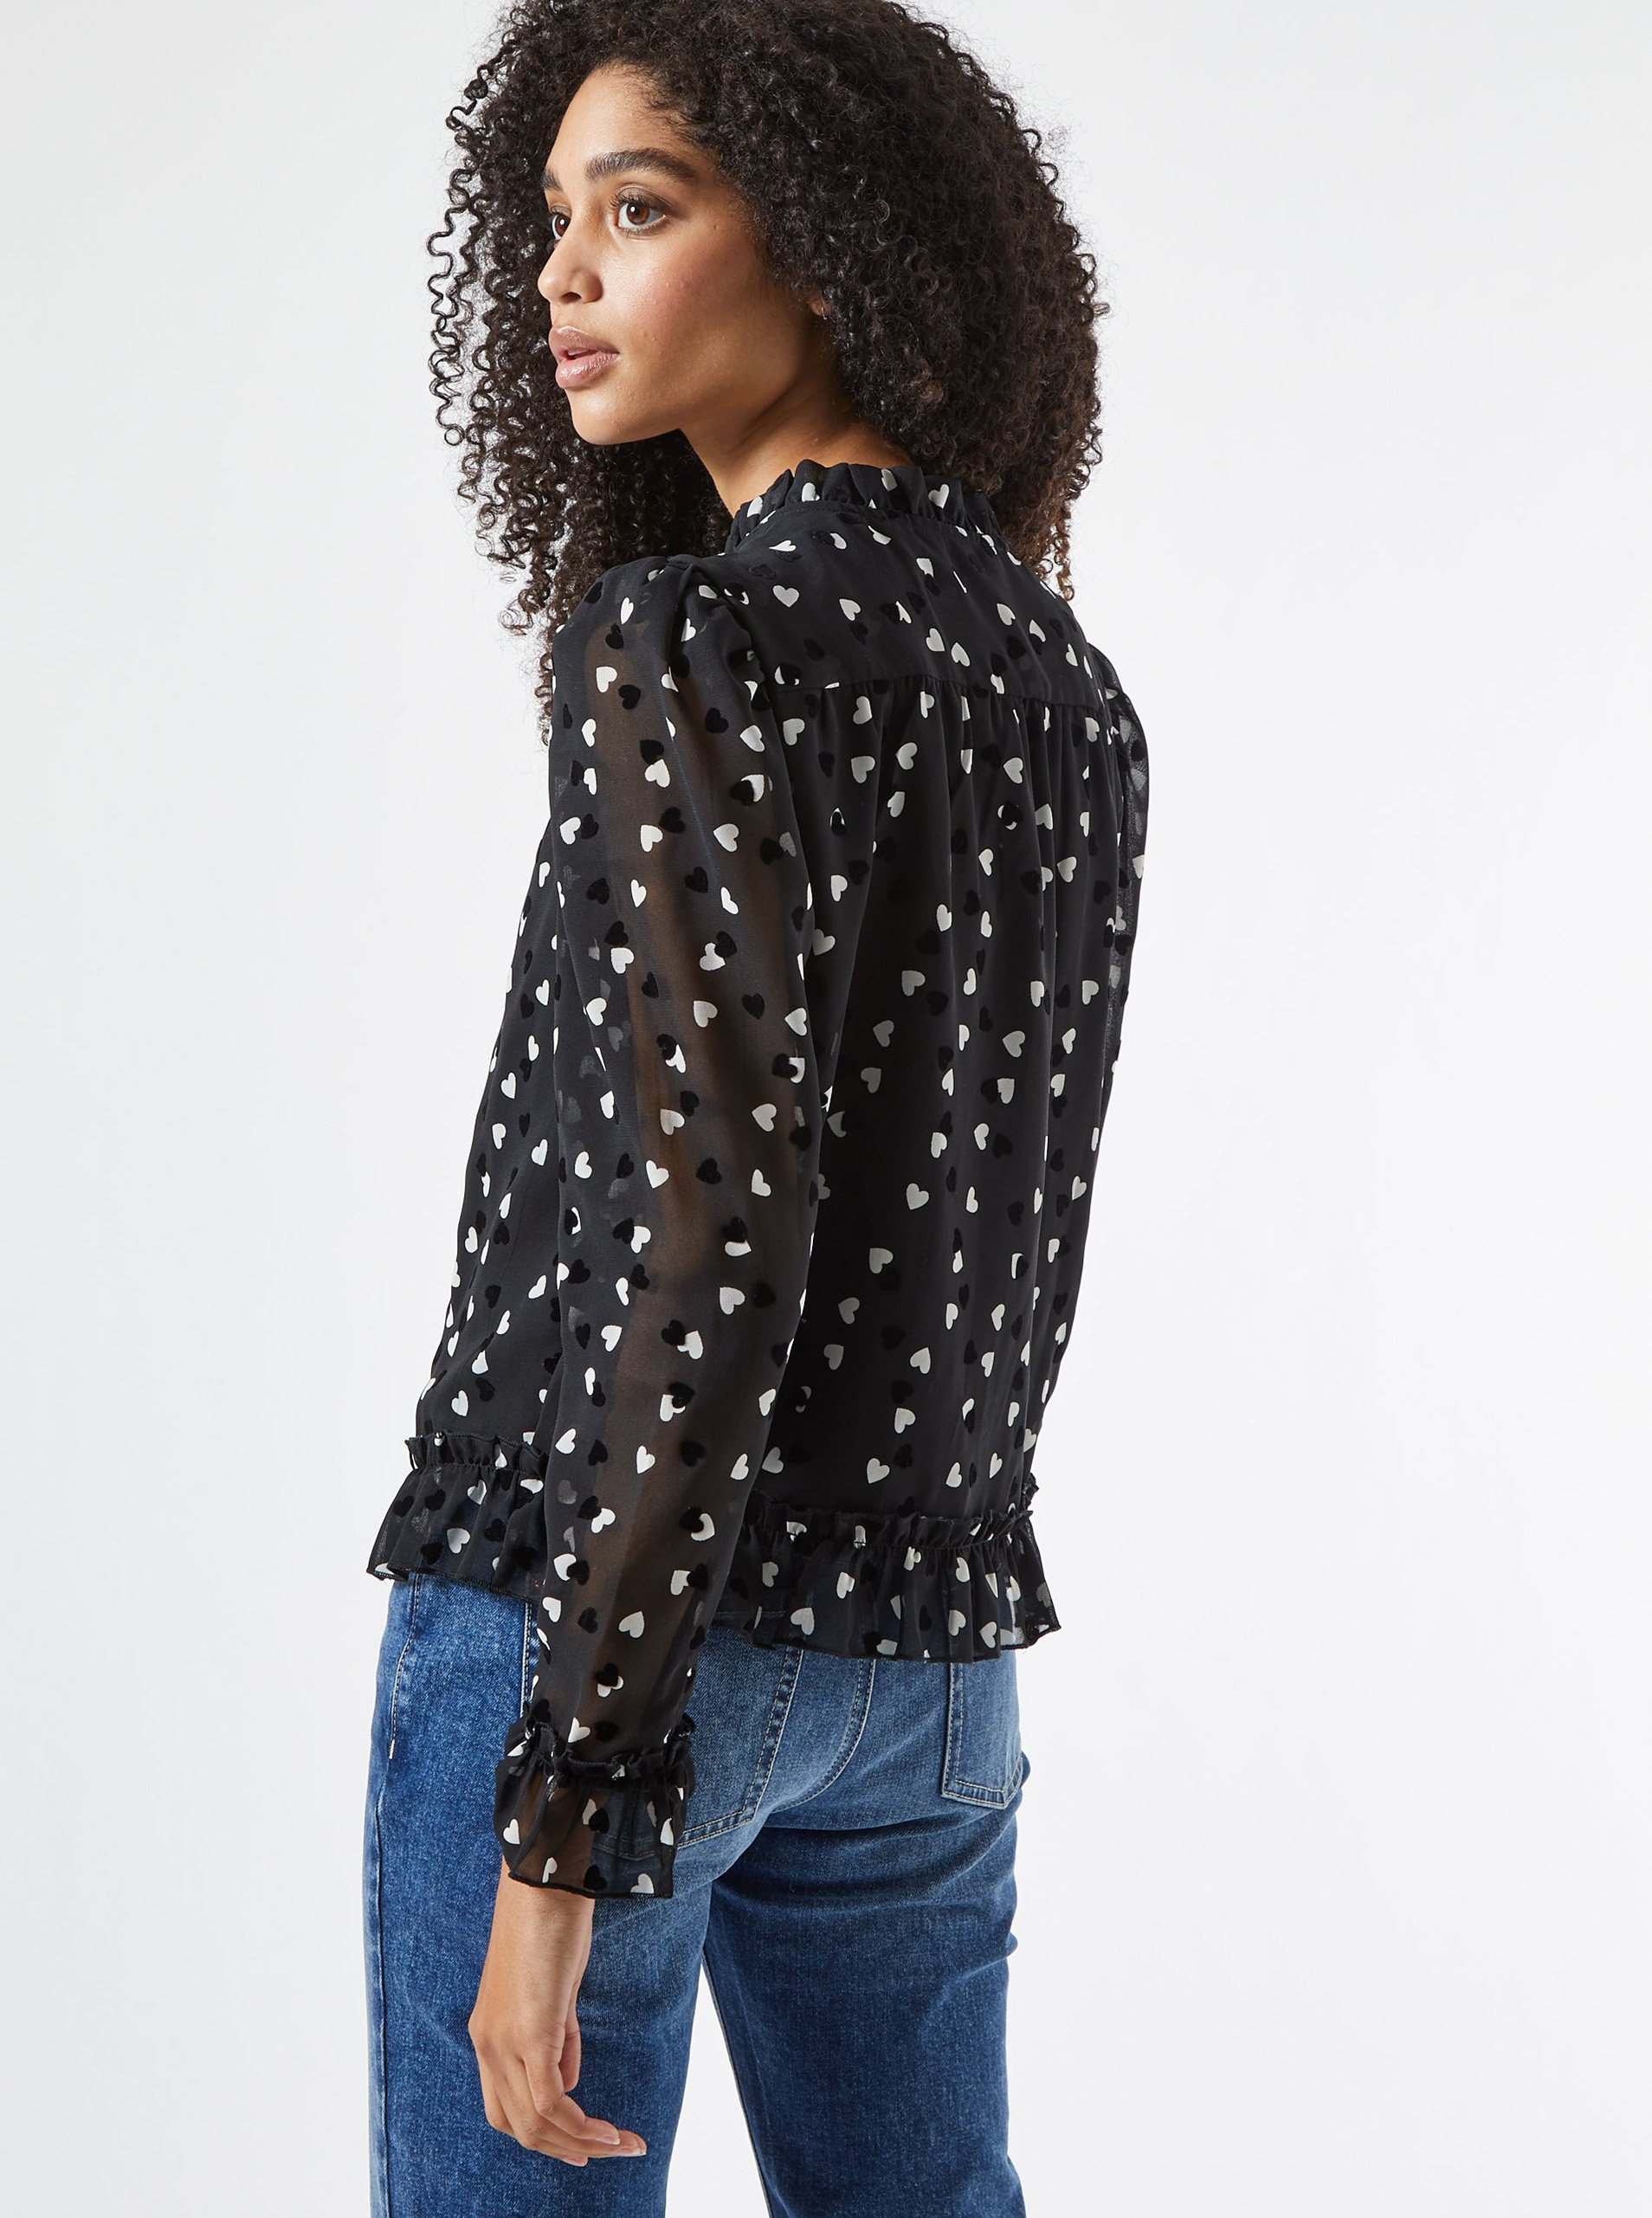 Black patterned blouse with stand-up collar Dorothy Perkins